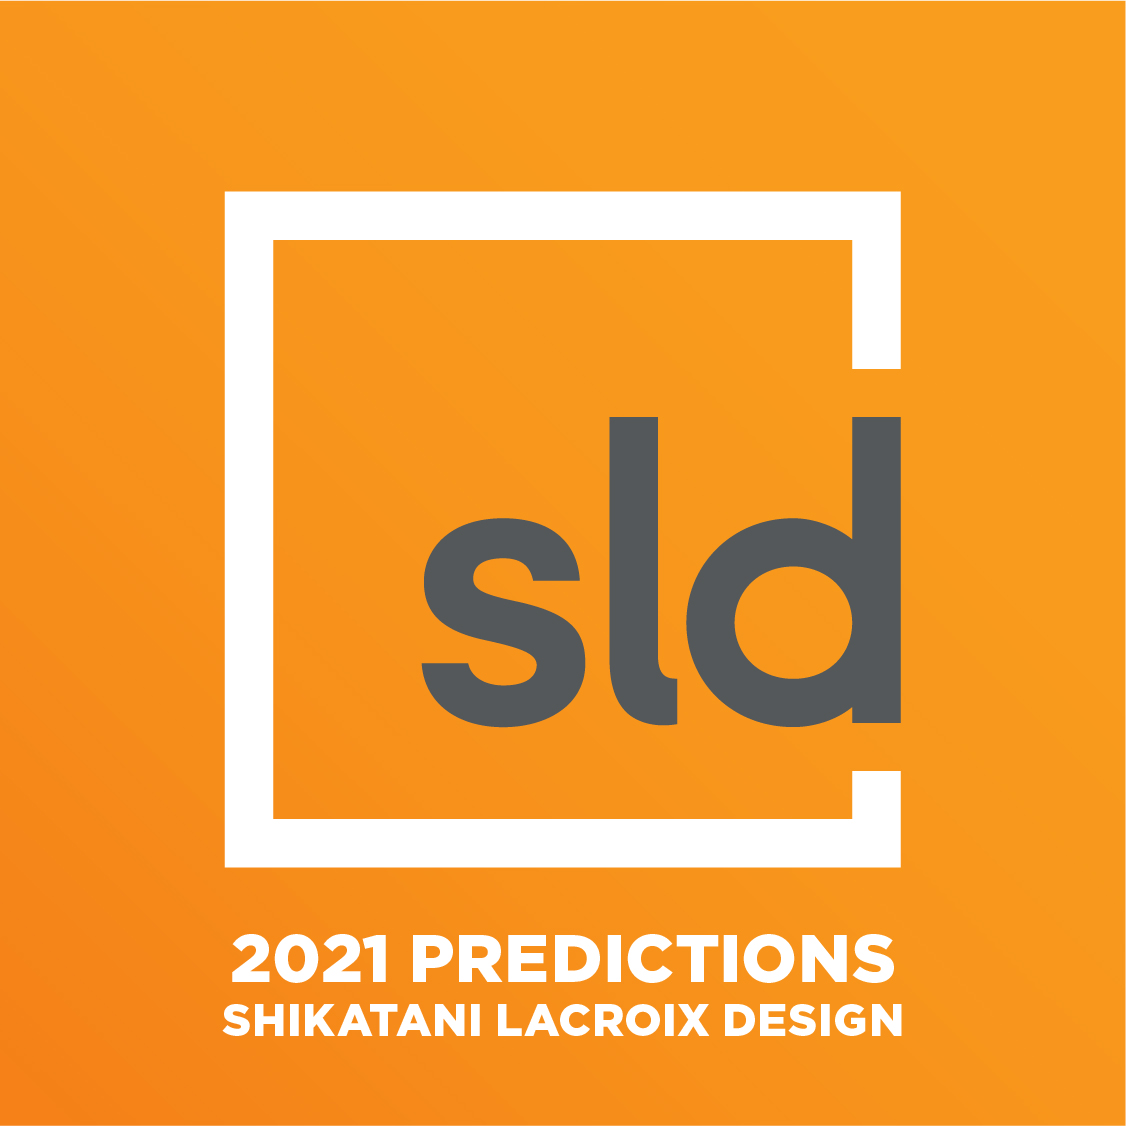 SLD team predictions for 2021